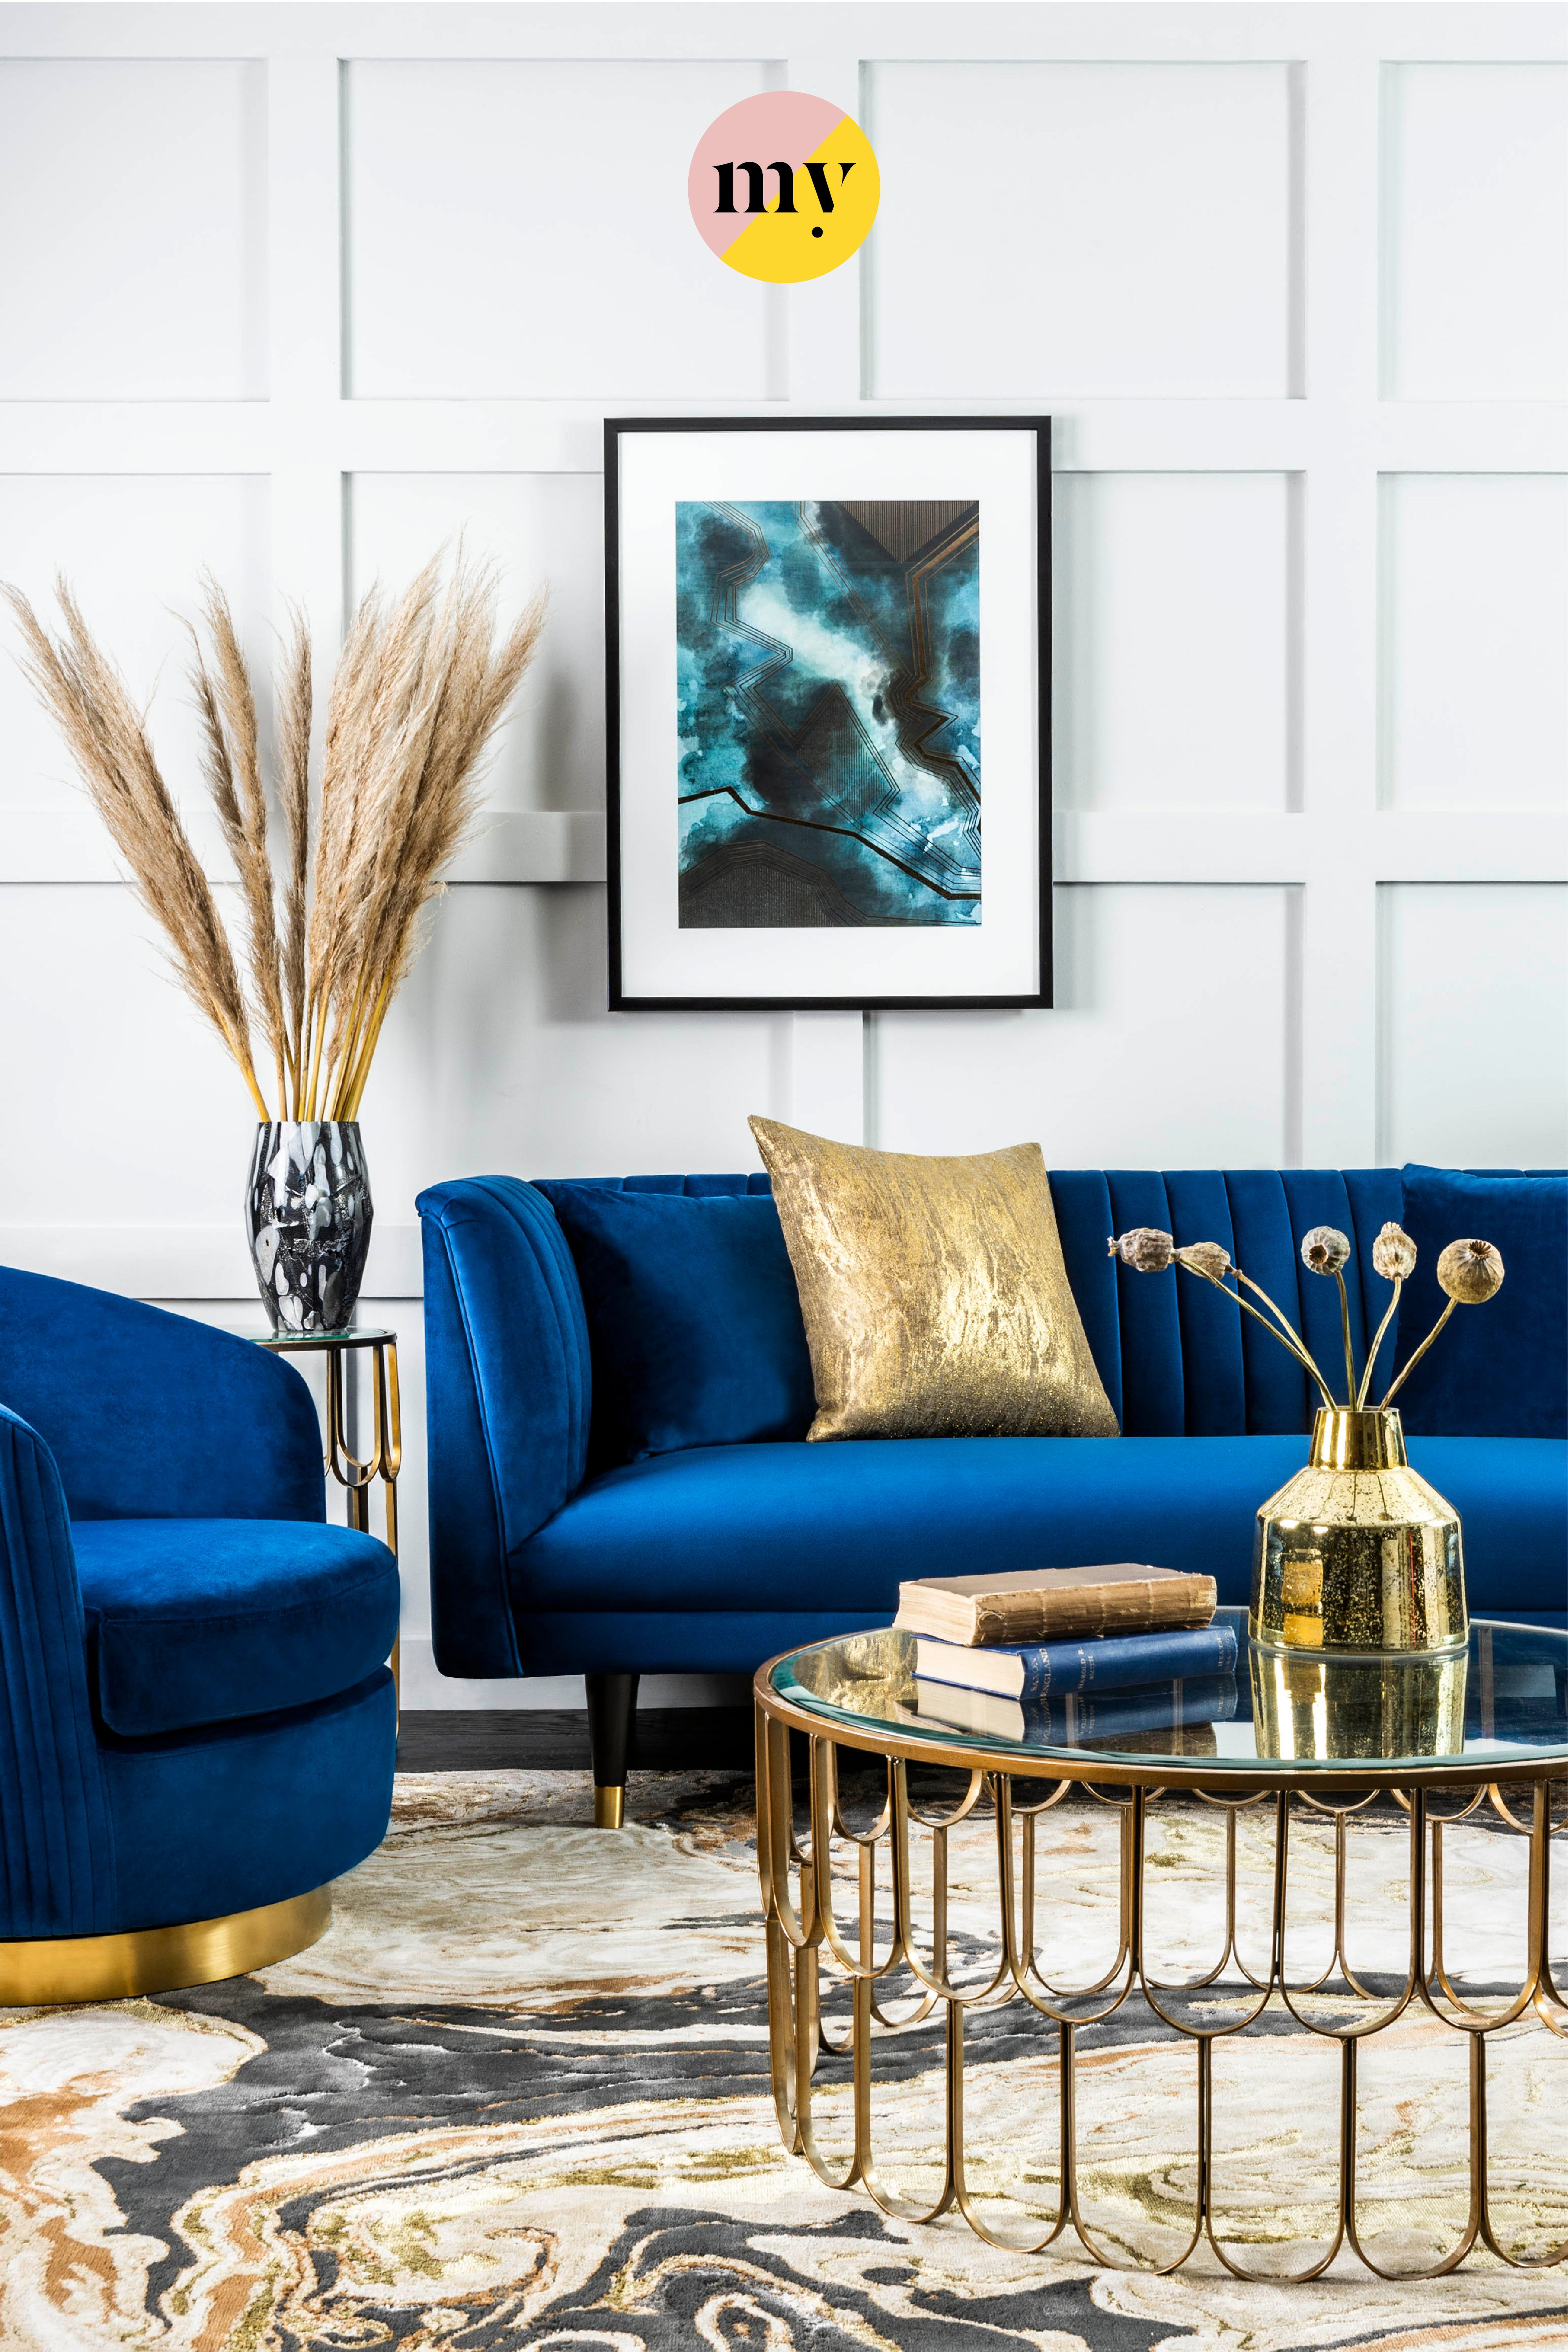 Baxter Three Seat Sofa Navy Blue Blue And Gold Living Room Blue Sofas Living Room Black Living Room Decor